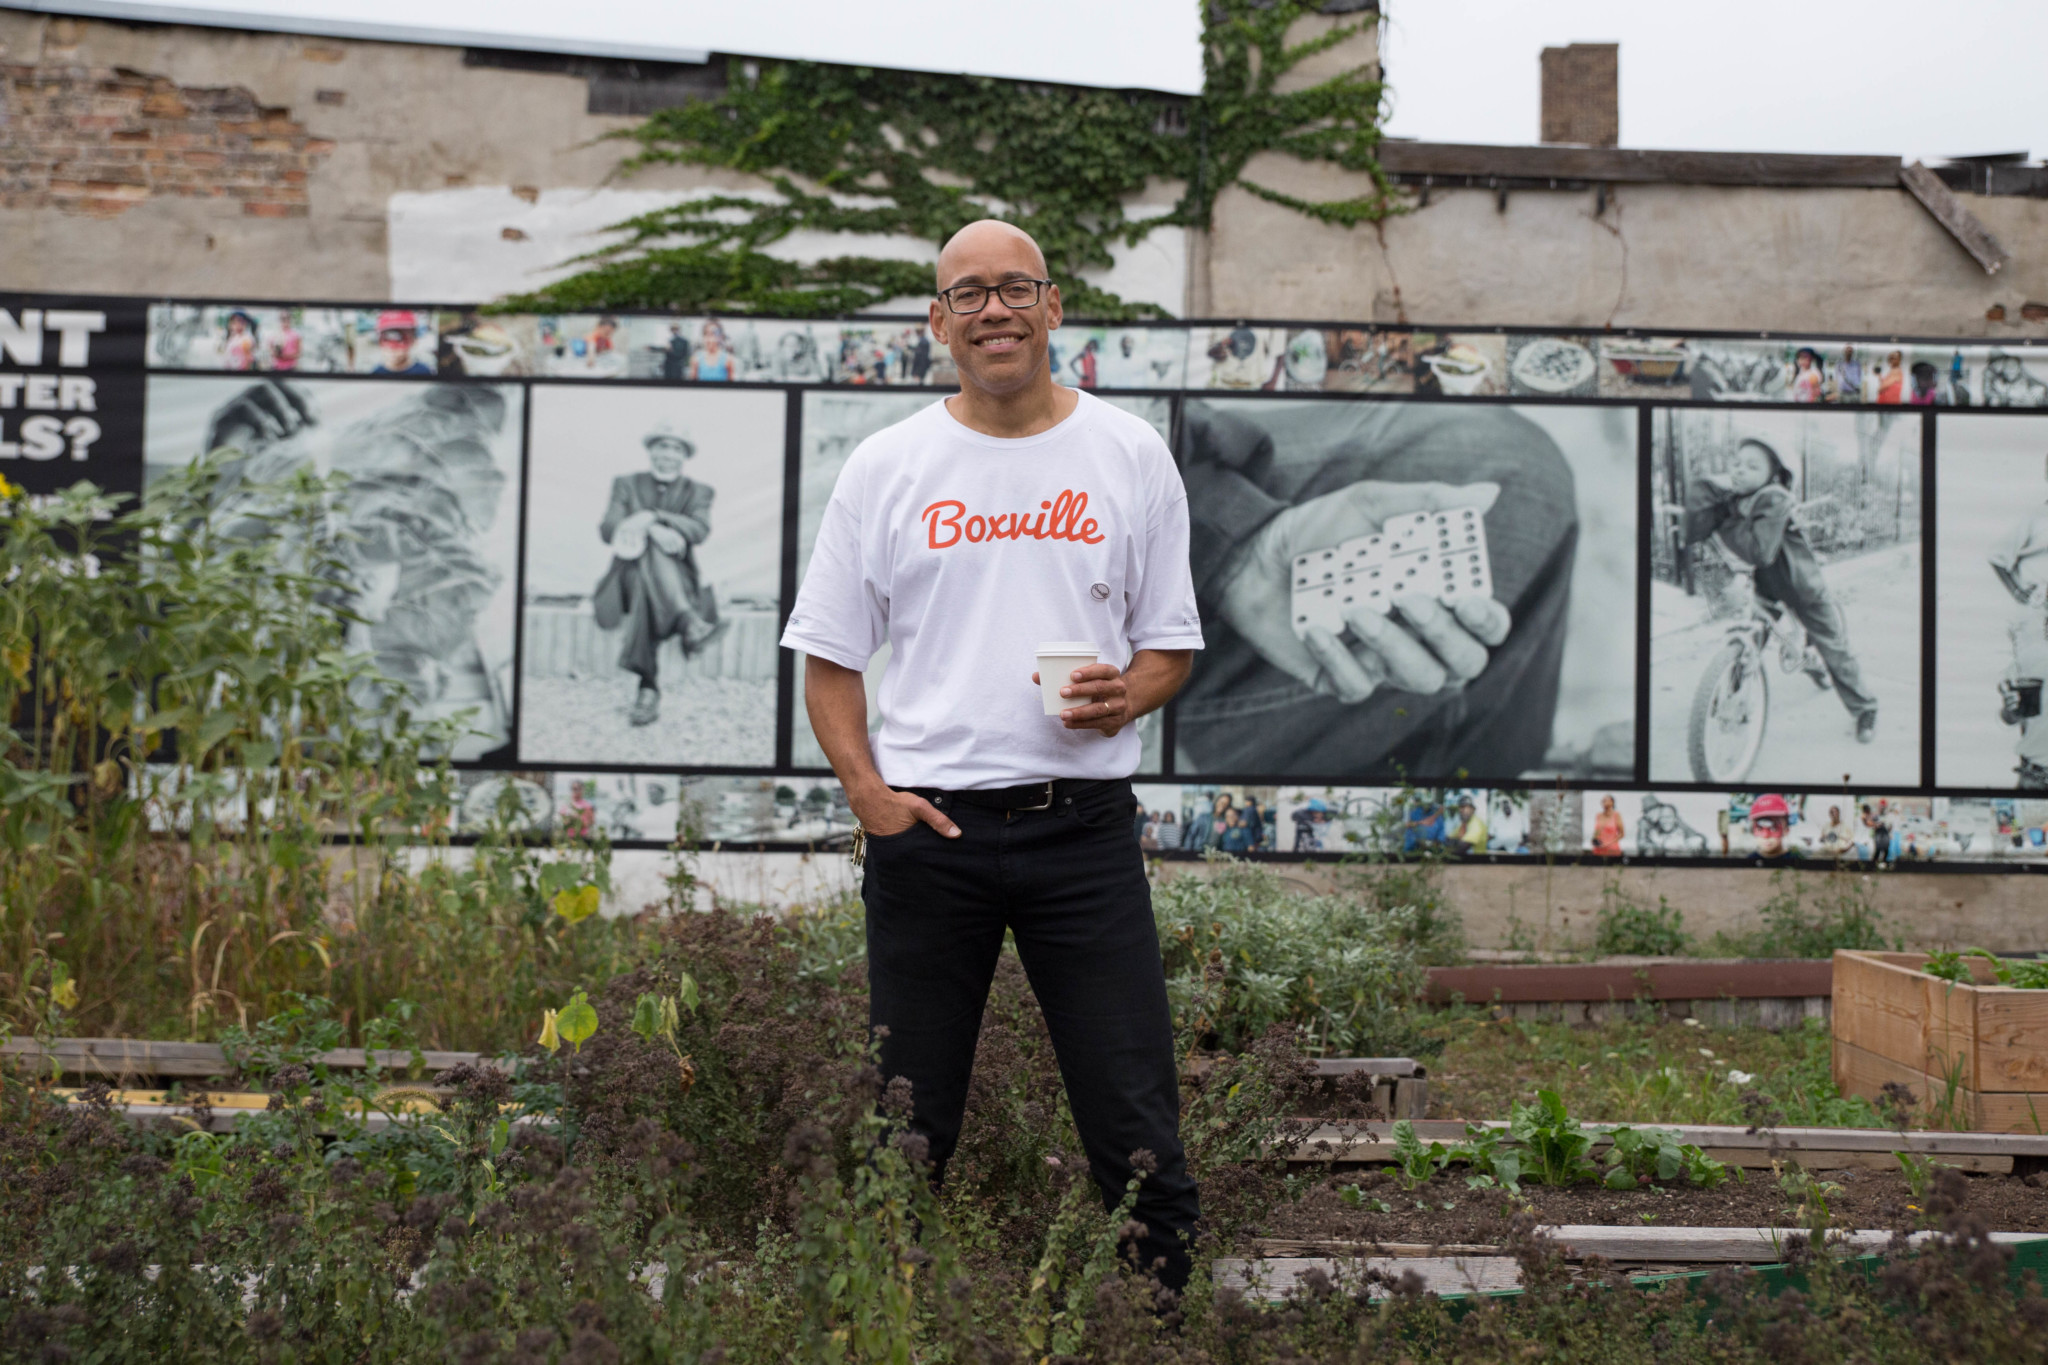 Boxville founder Bernard Loyd in the Bronzeville Community Garden across the street (Jason Schumer)